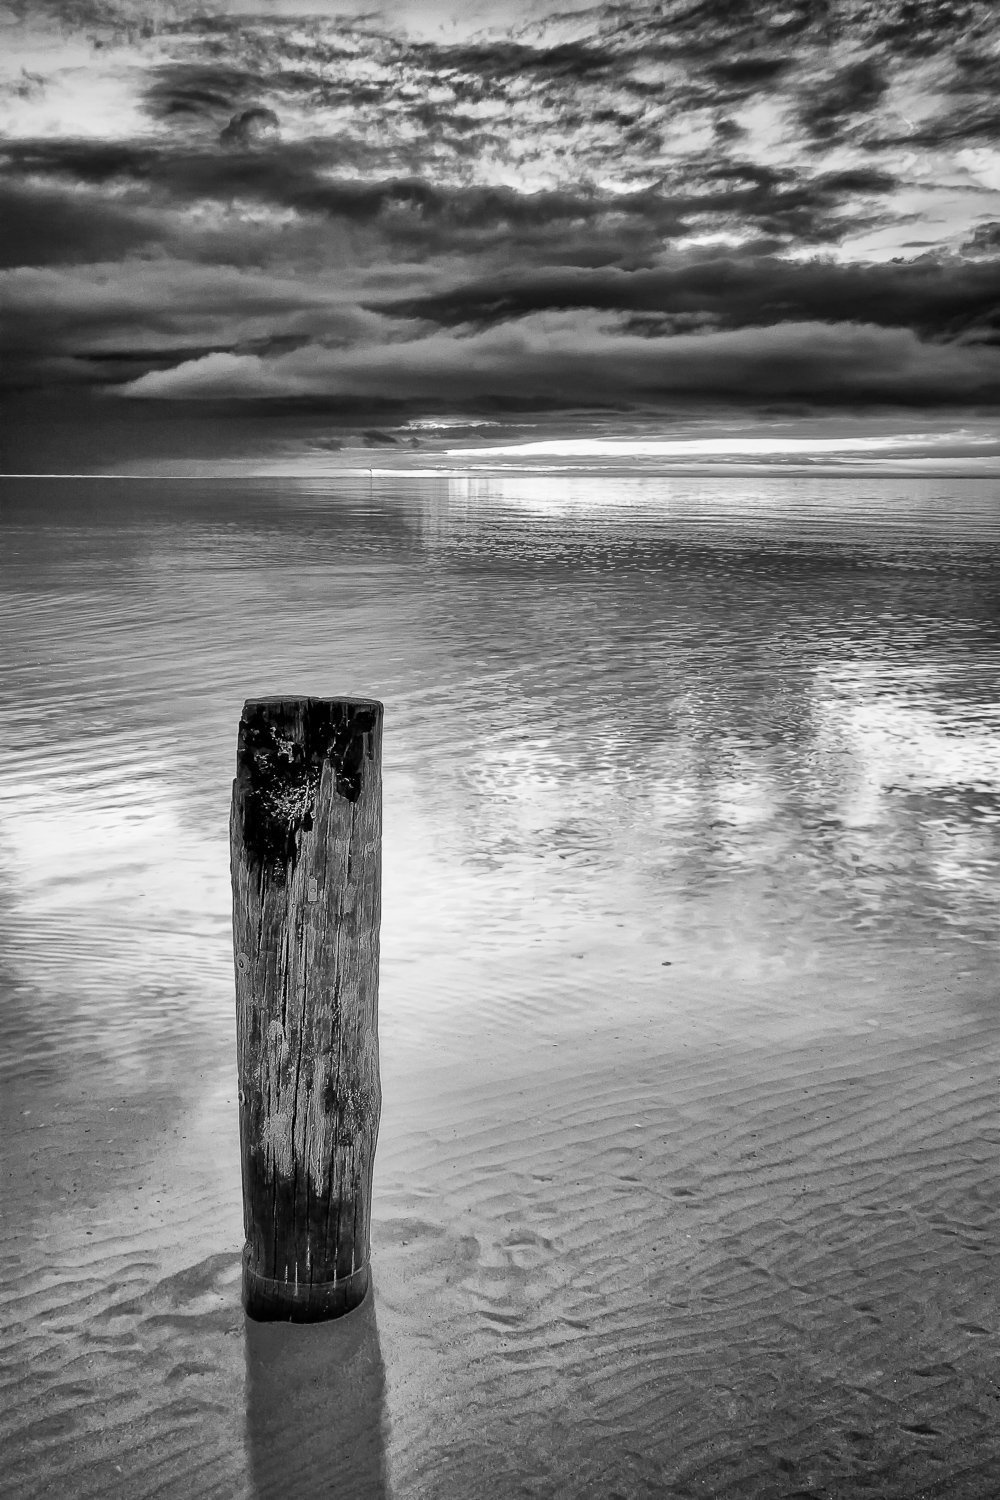 Mooring-Stump_Quindalup_Dunsborough_South-West_WA_Black and White